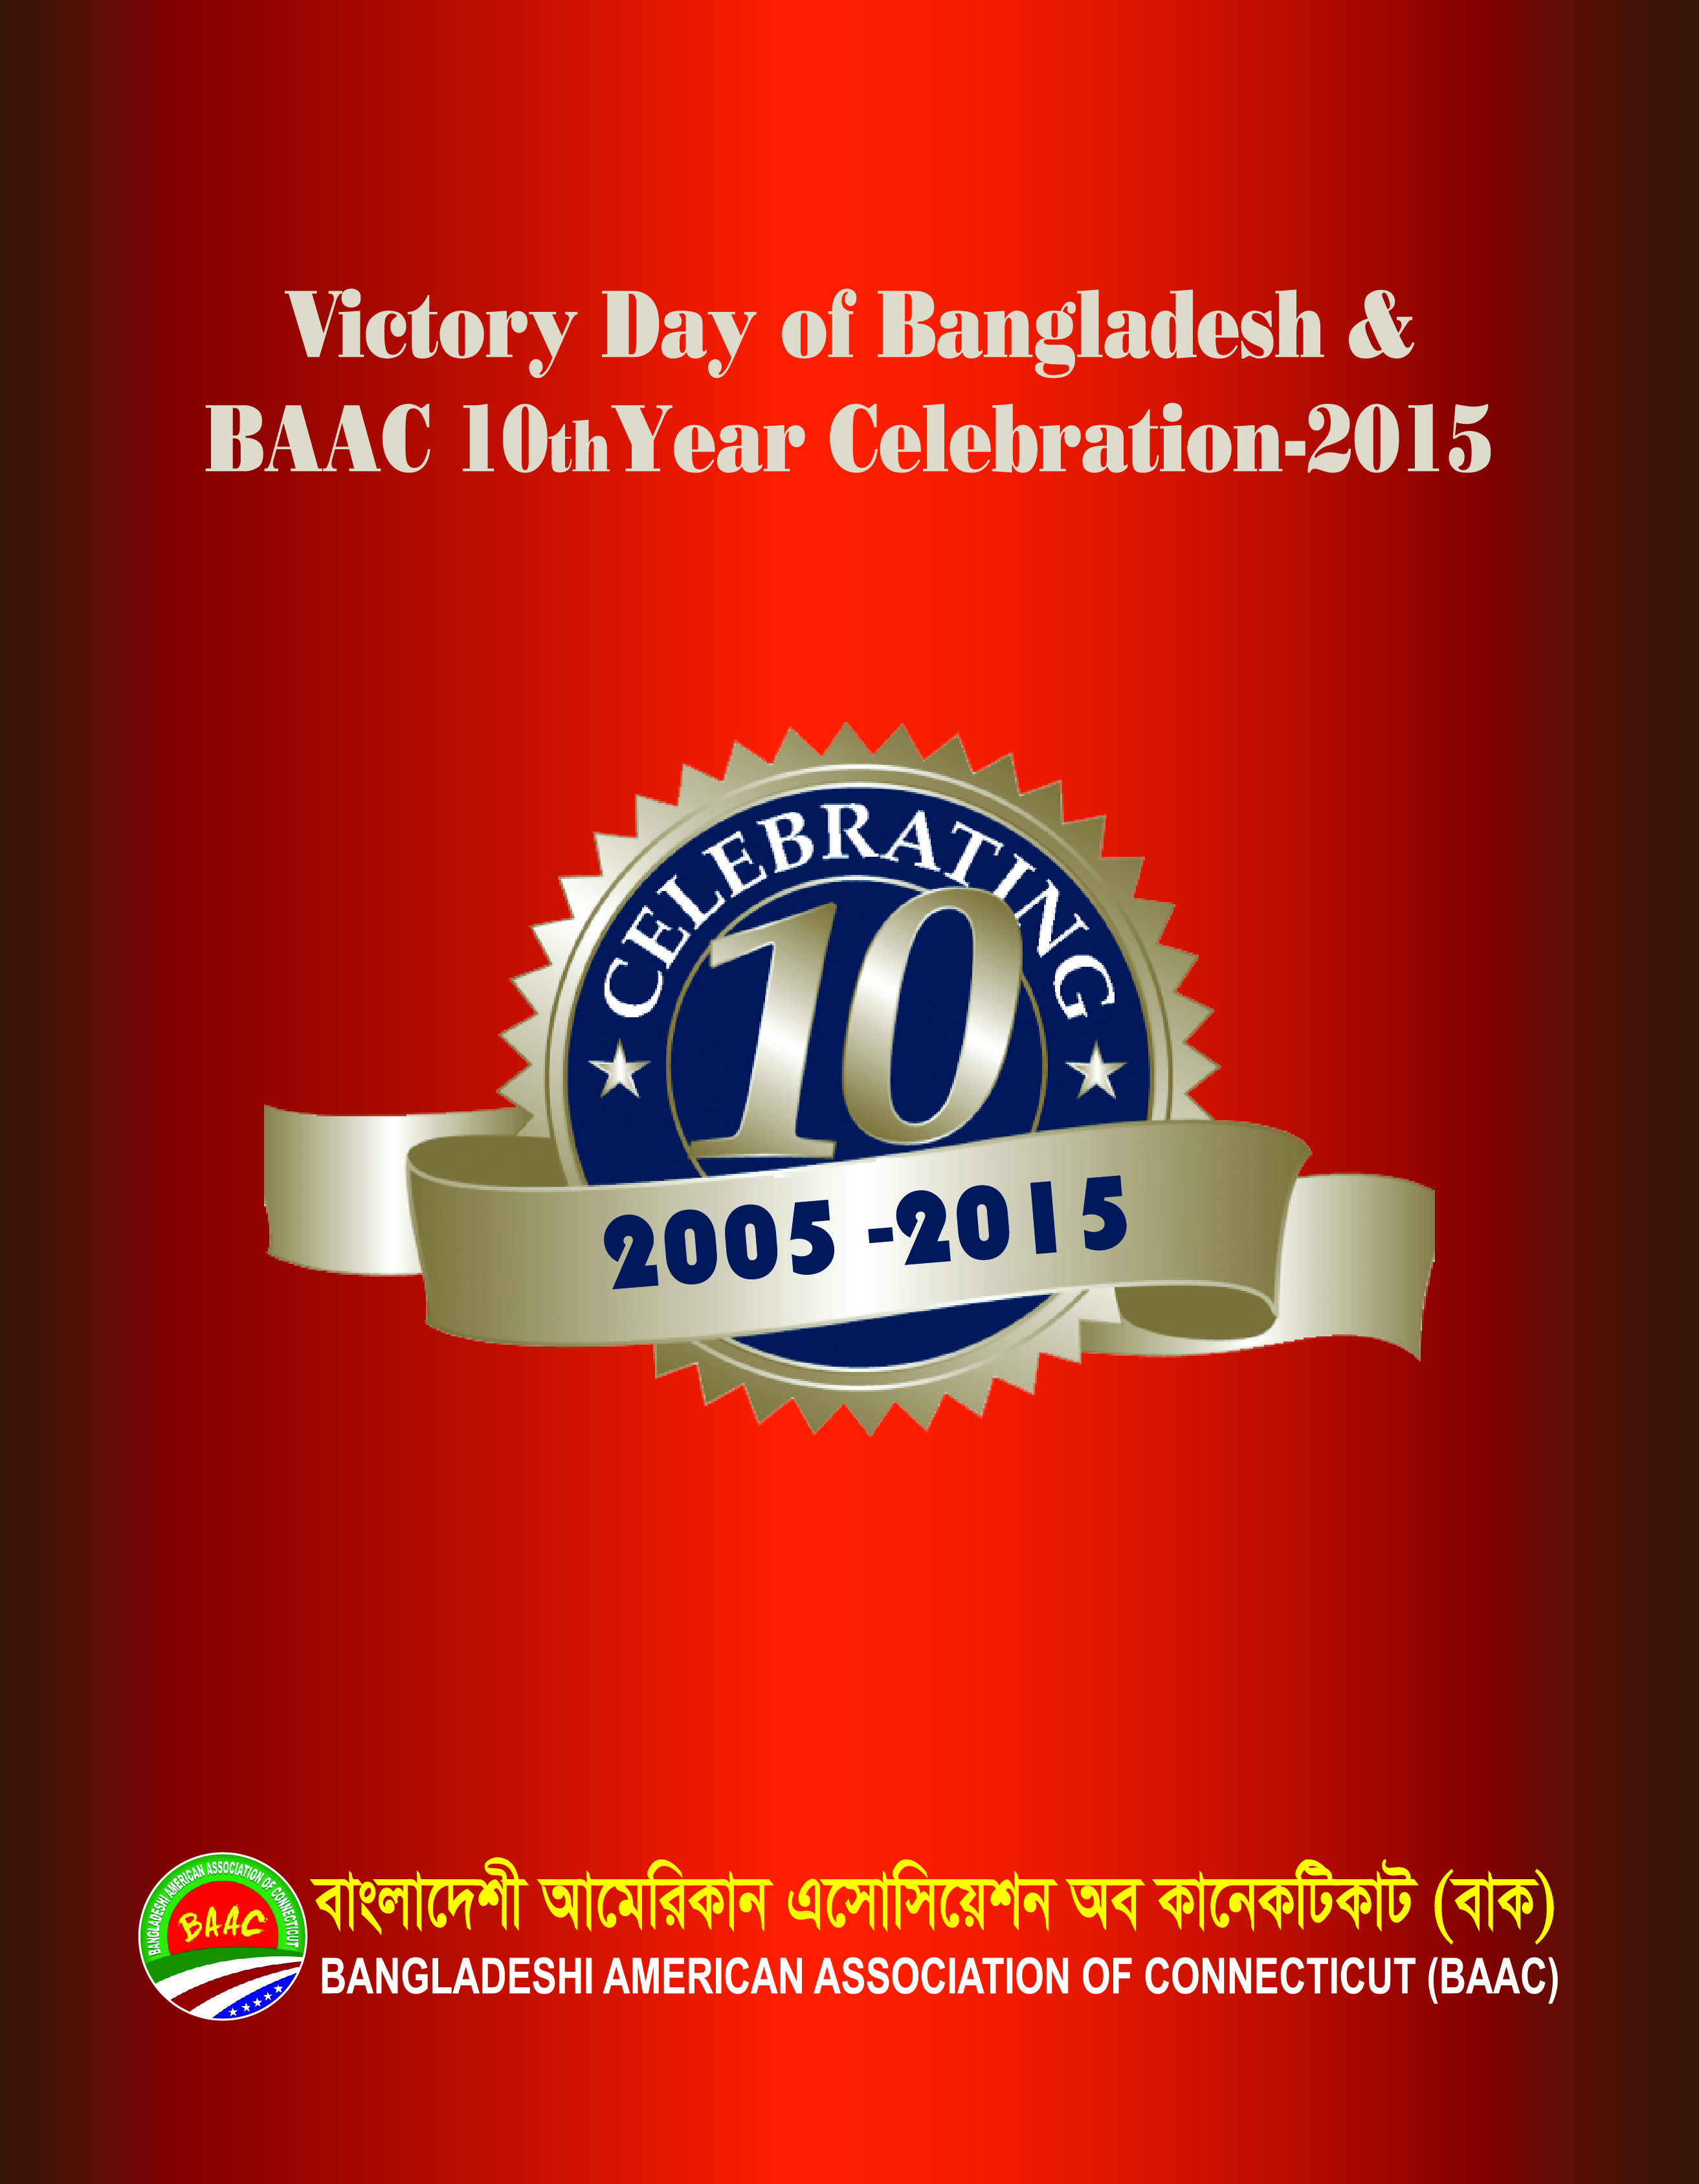 BAAC 10th Year Celebration -2015 Special Documentary